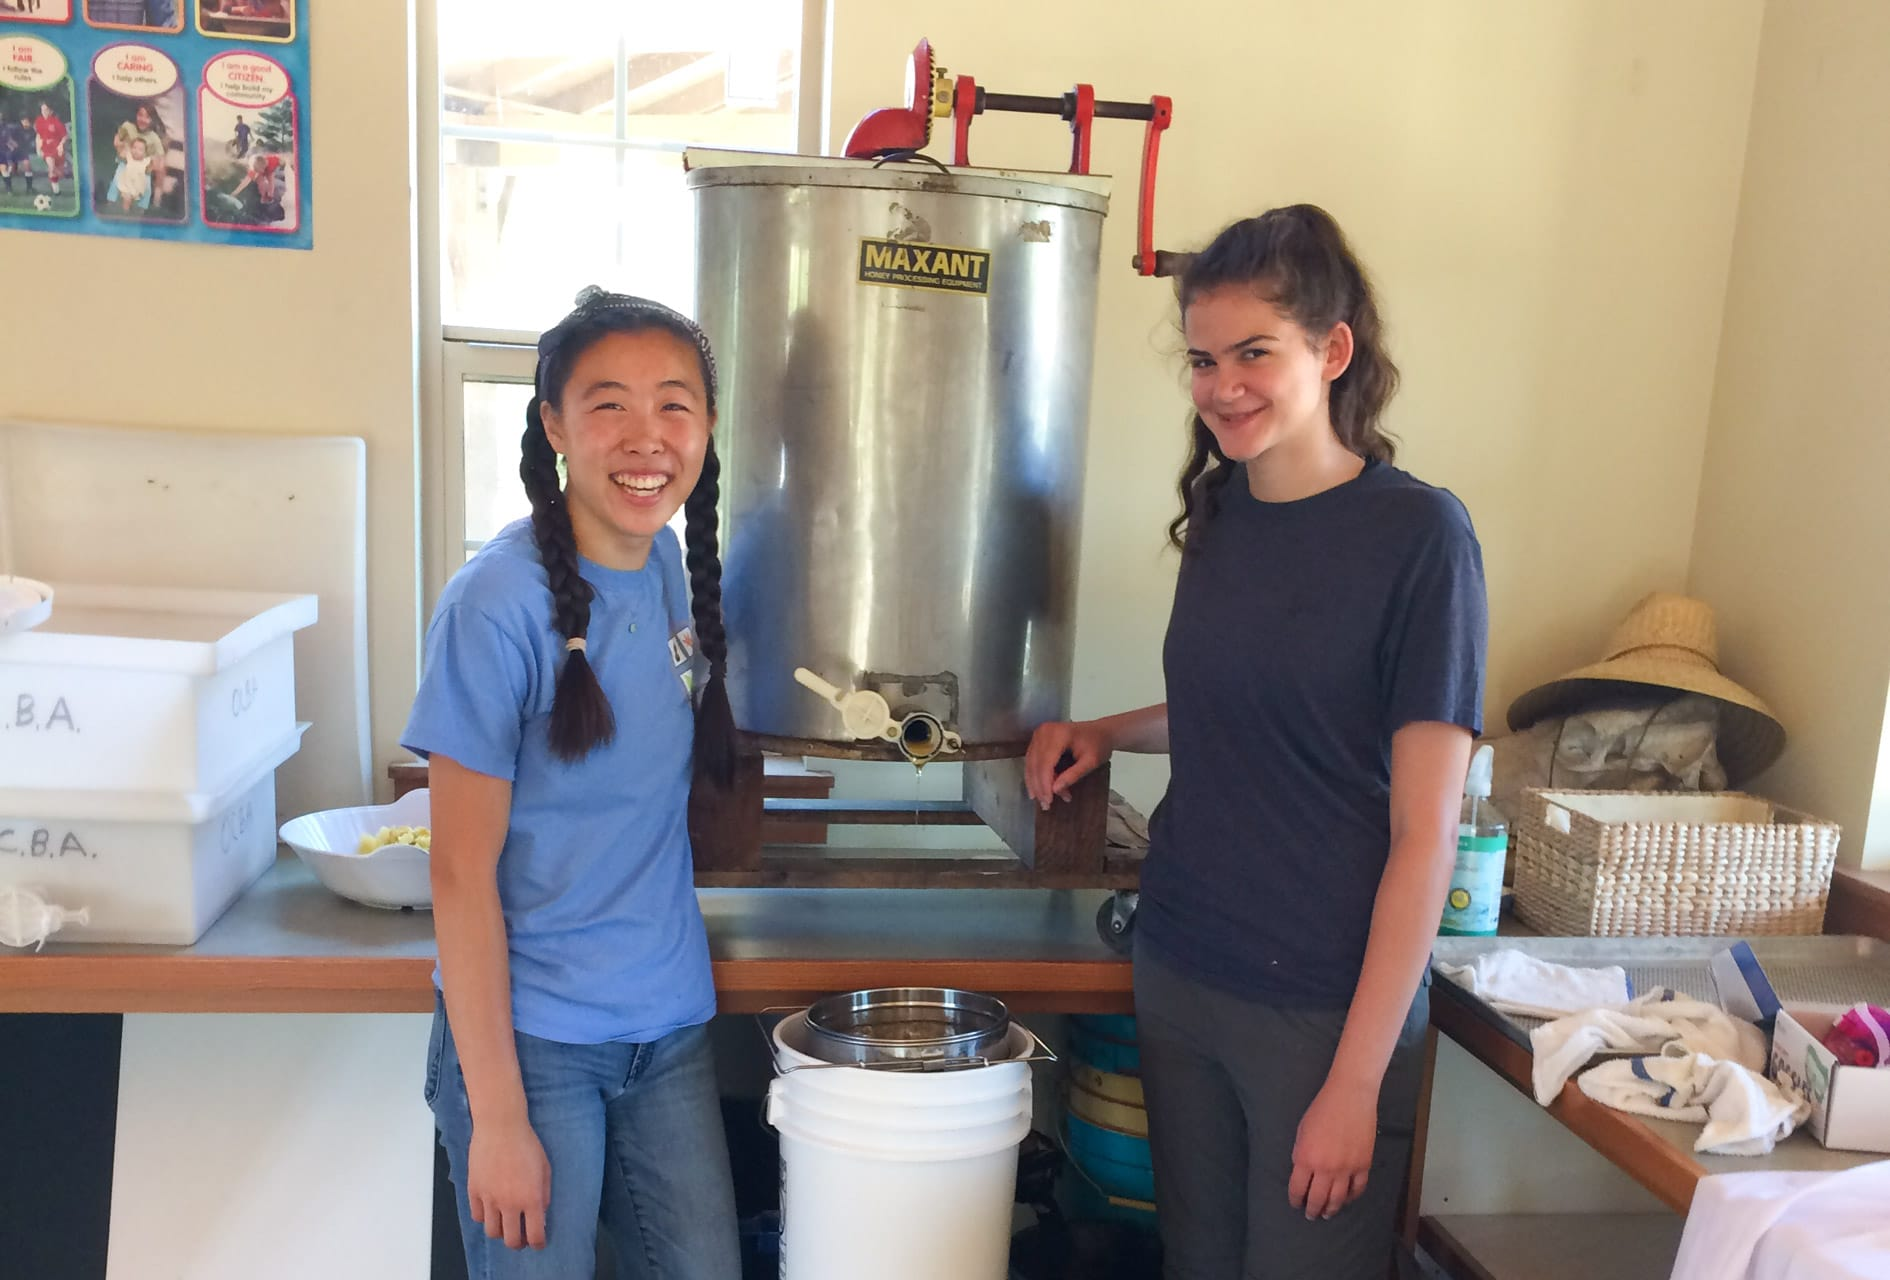 Two female teens standing next to a honey vat